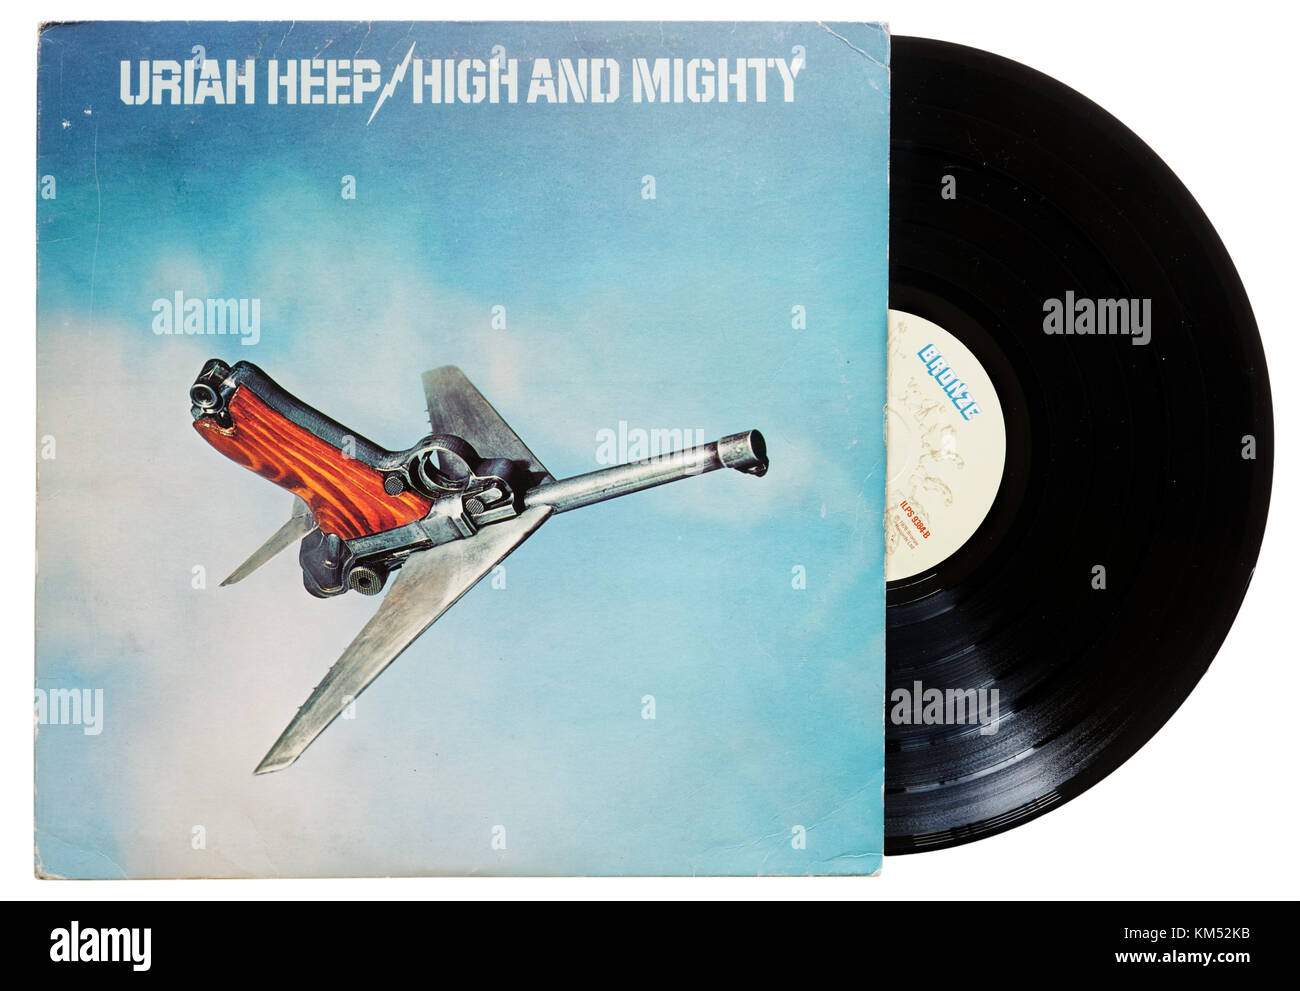 Uriah Heep High and Mighty album - Stock Image